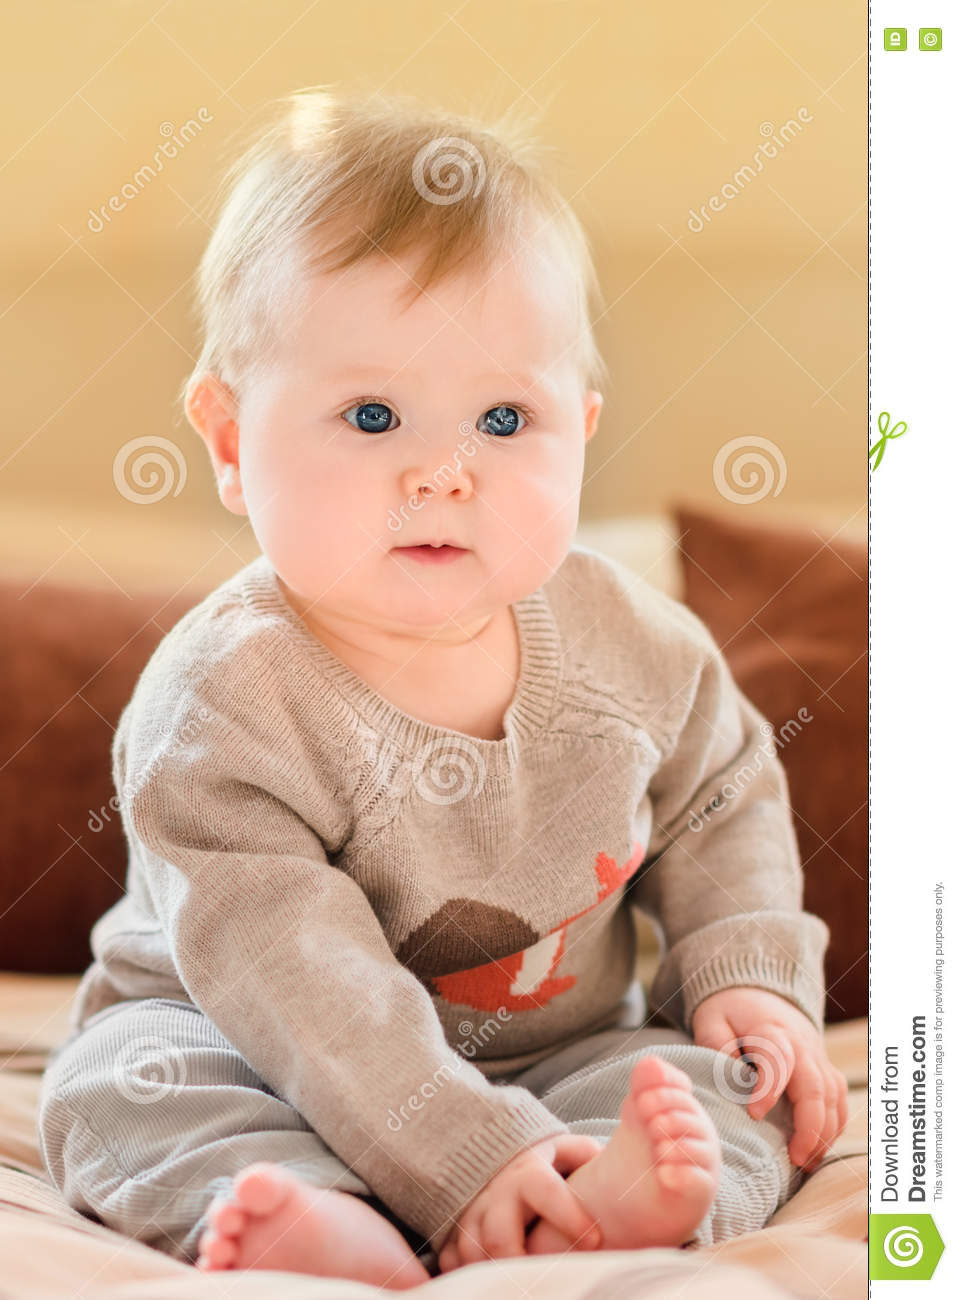 Happy childhood. Cute little child with blond hair and blue eyes wearing knitted sweater sitting on sofa and touching her leg